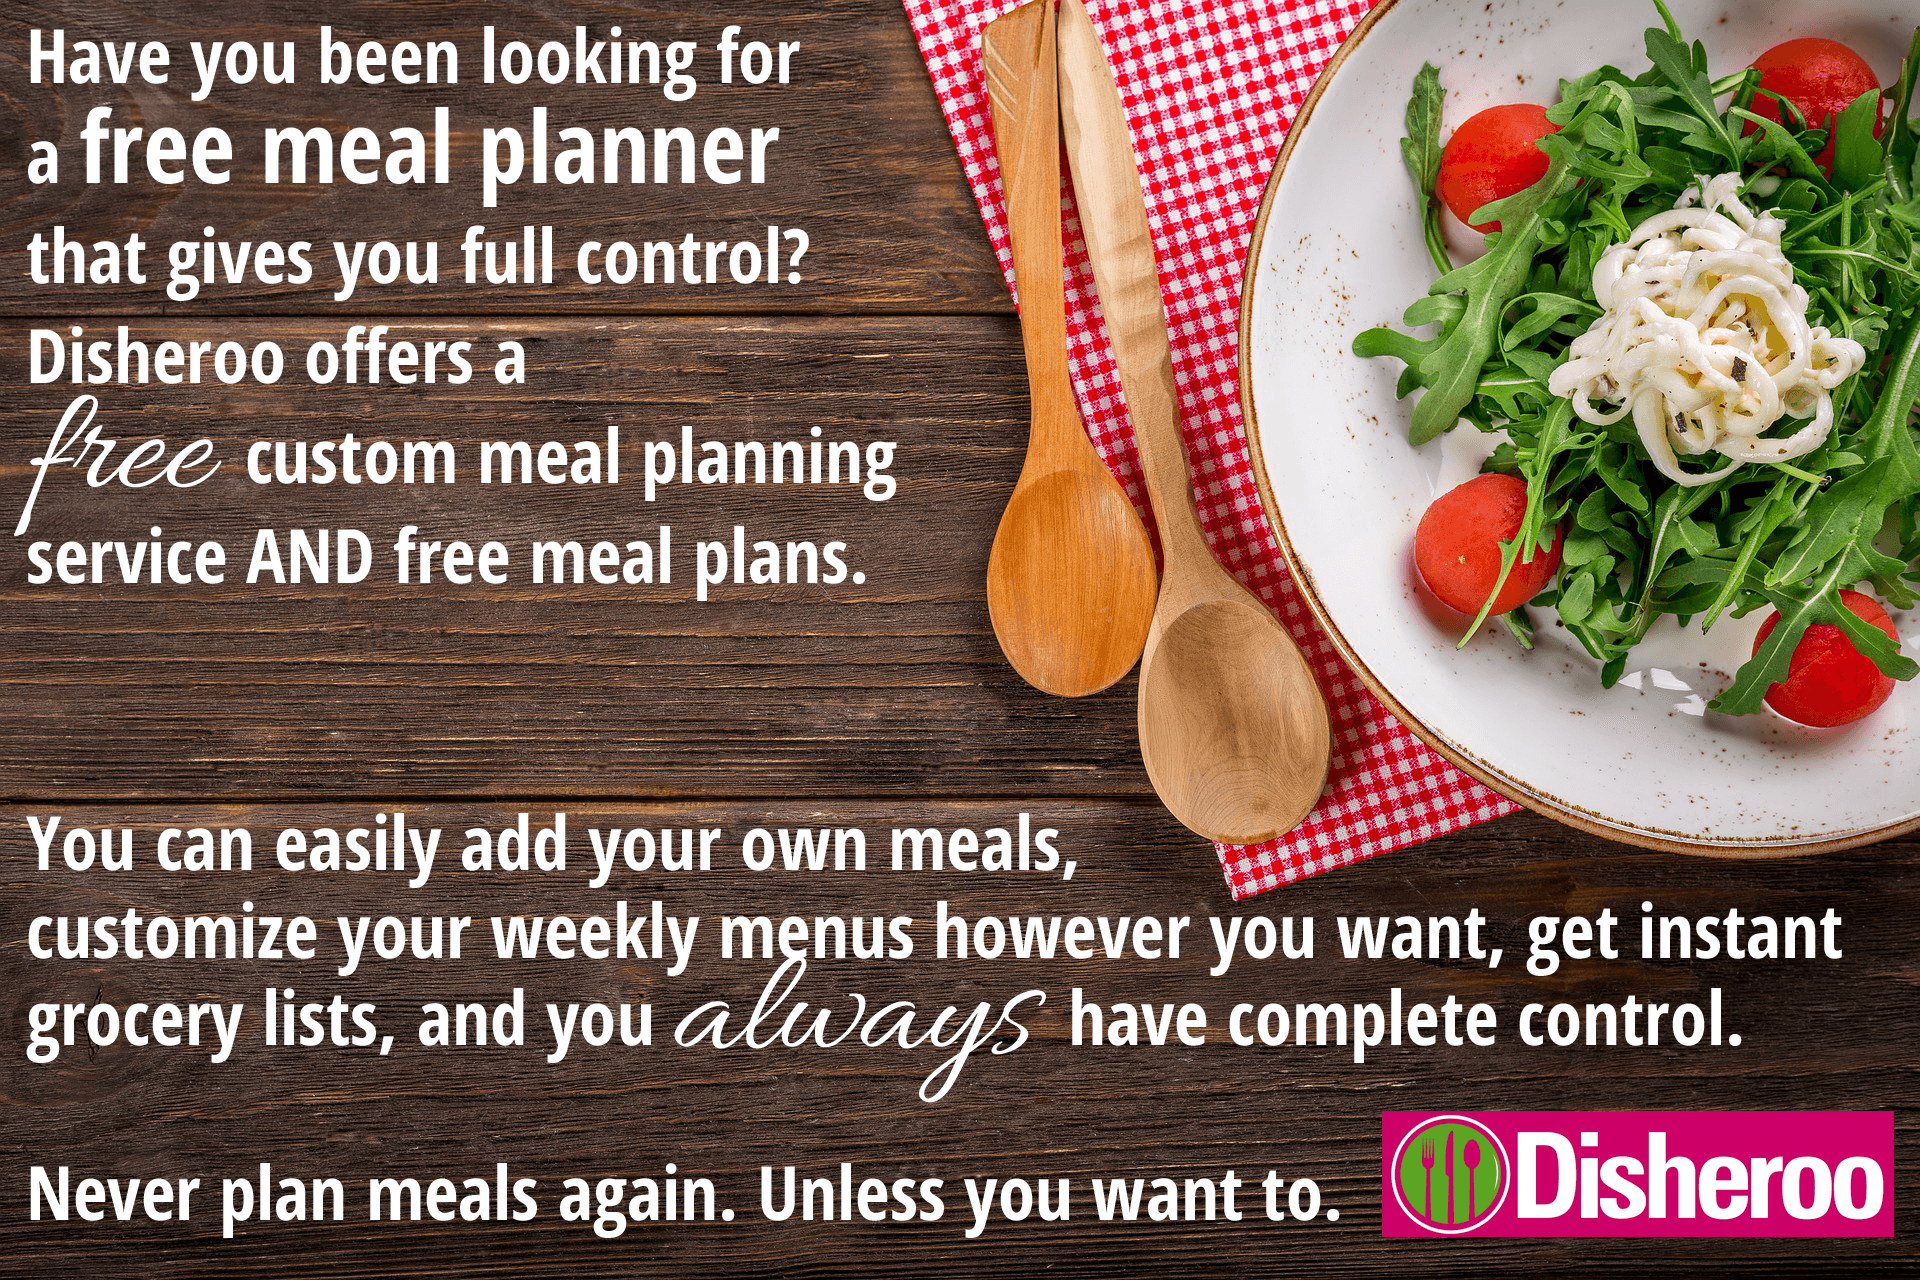 Have you been looking for a free meal planner that gives you full control?  Disheroo offers a free custom meal planning service AND free meal plans.  You can add your own meals, customize your weekly menus however you want, get instant grocery lists, and you always have complete control.